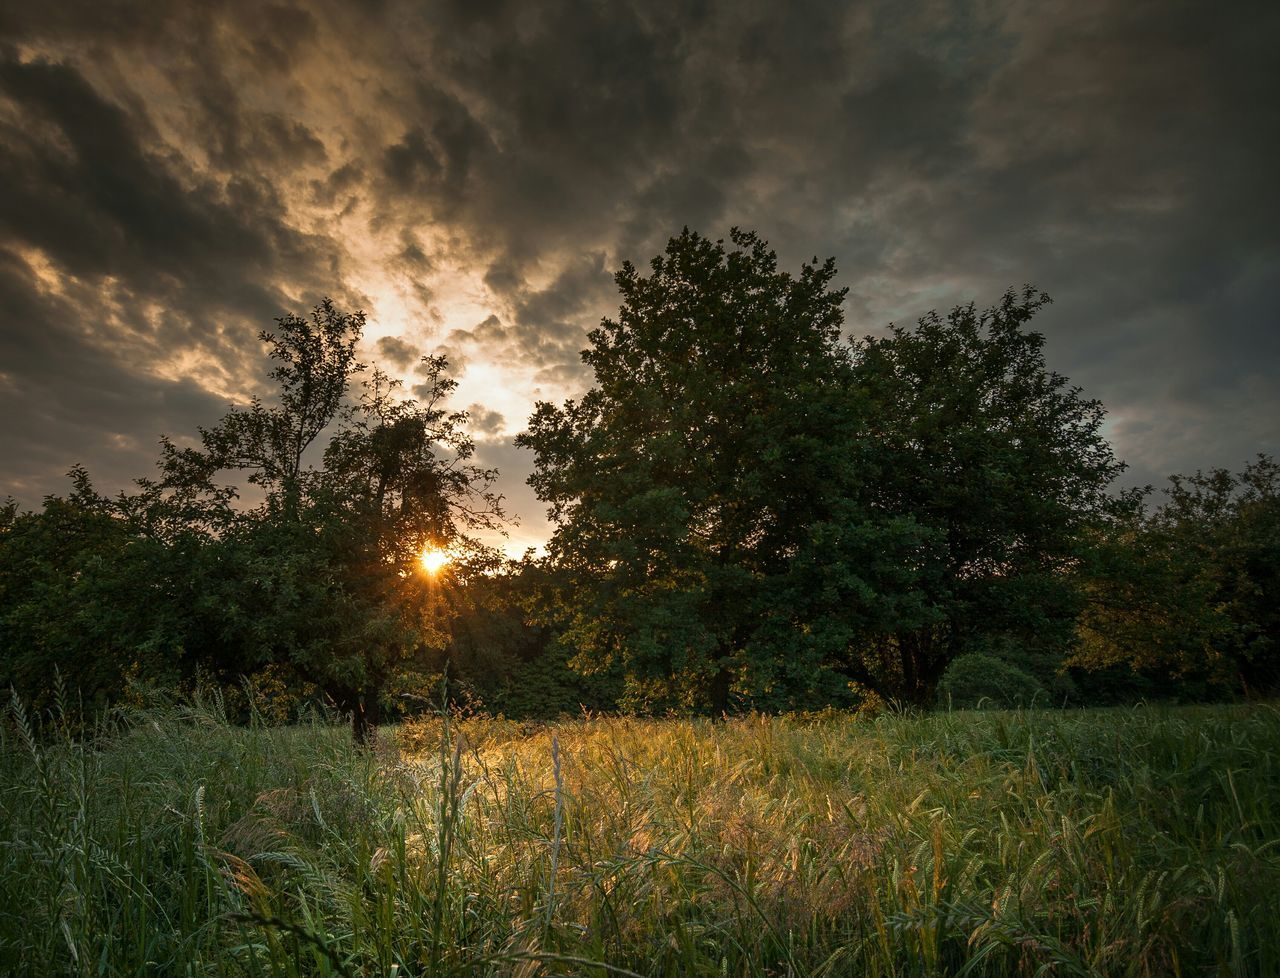 Trees On Grassy Field During Sunset